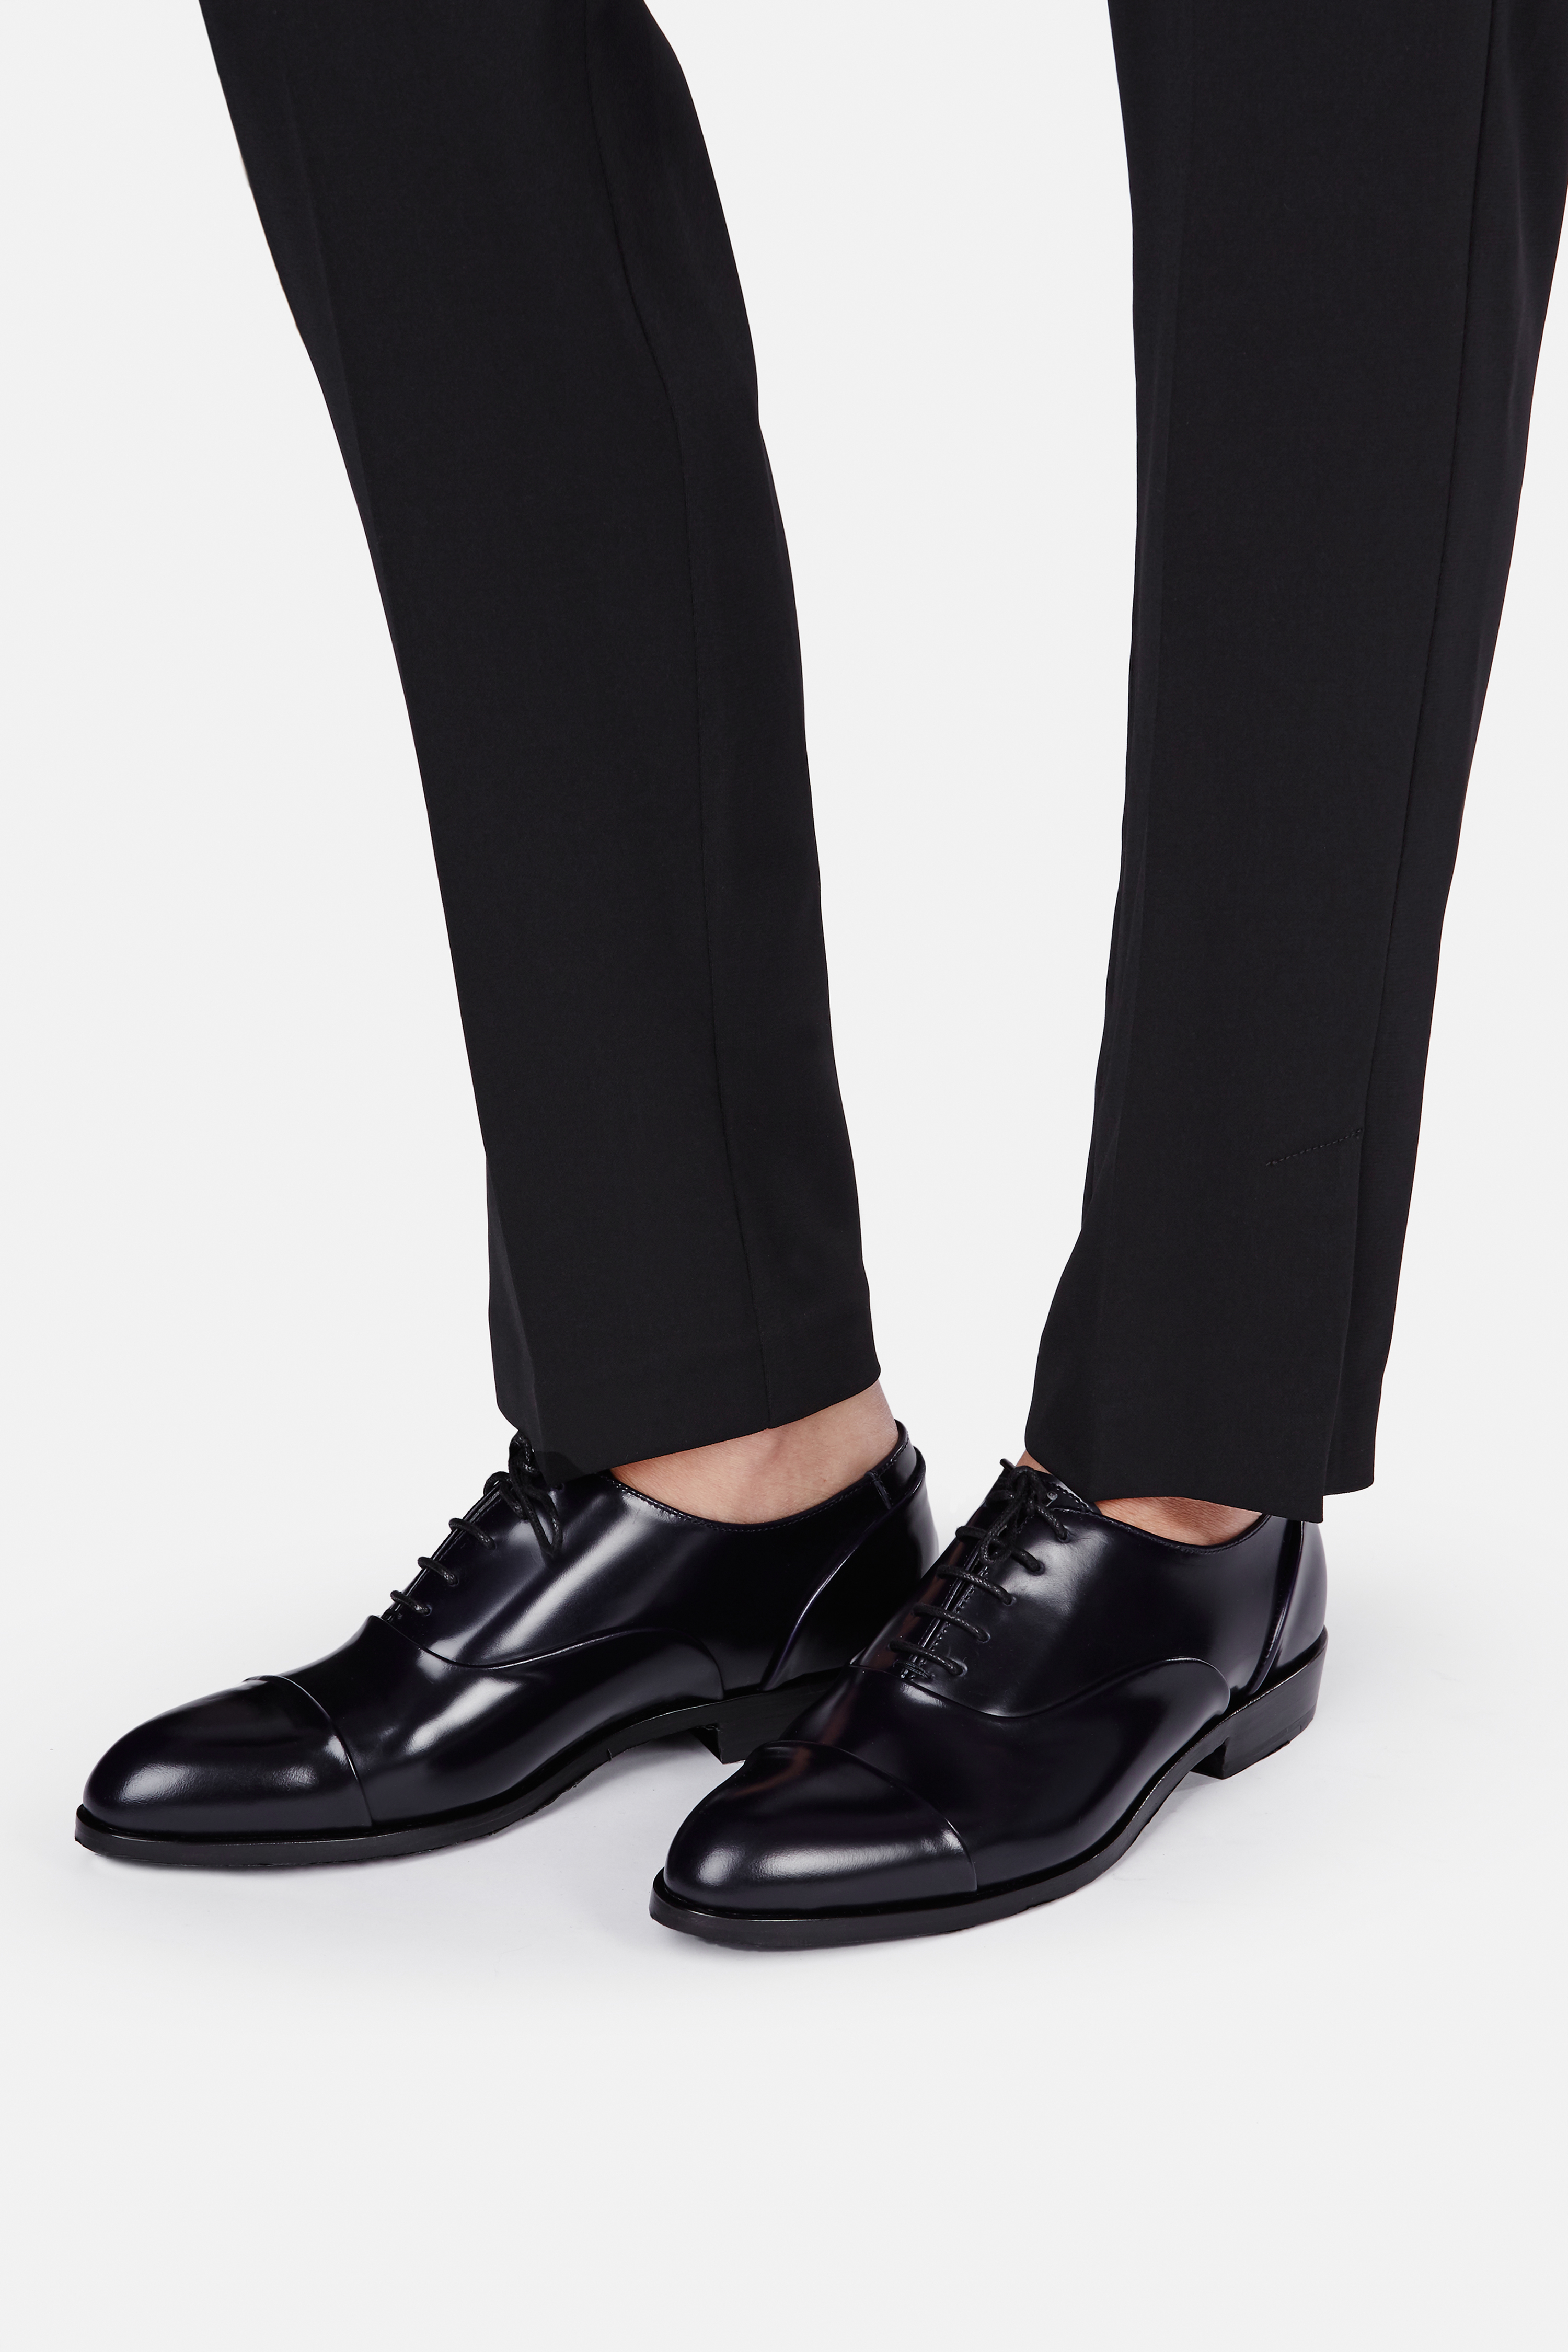 Robert Clergerie Leather Lace-Up Loafers PoibEBj